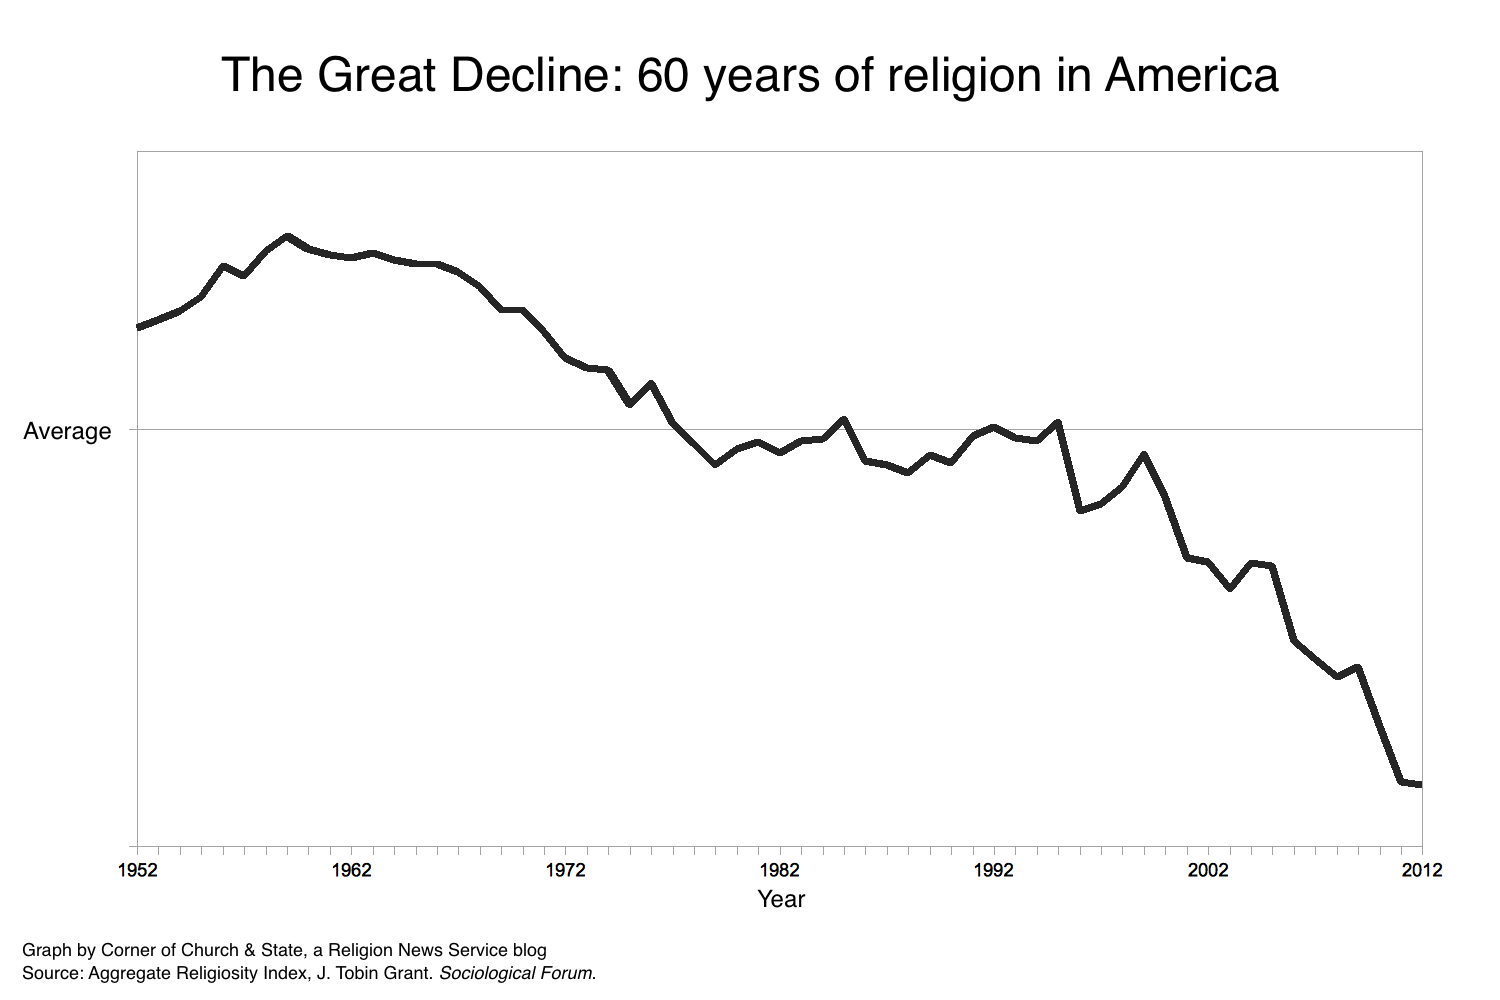 The Great Decline: 60 years of religion in one graph